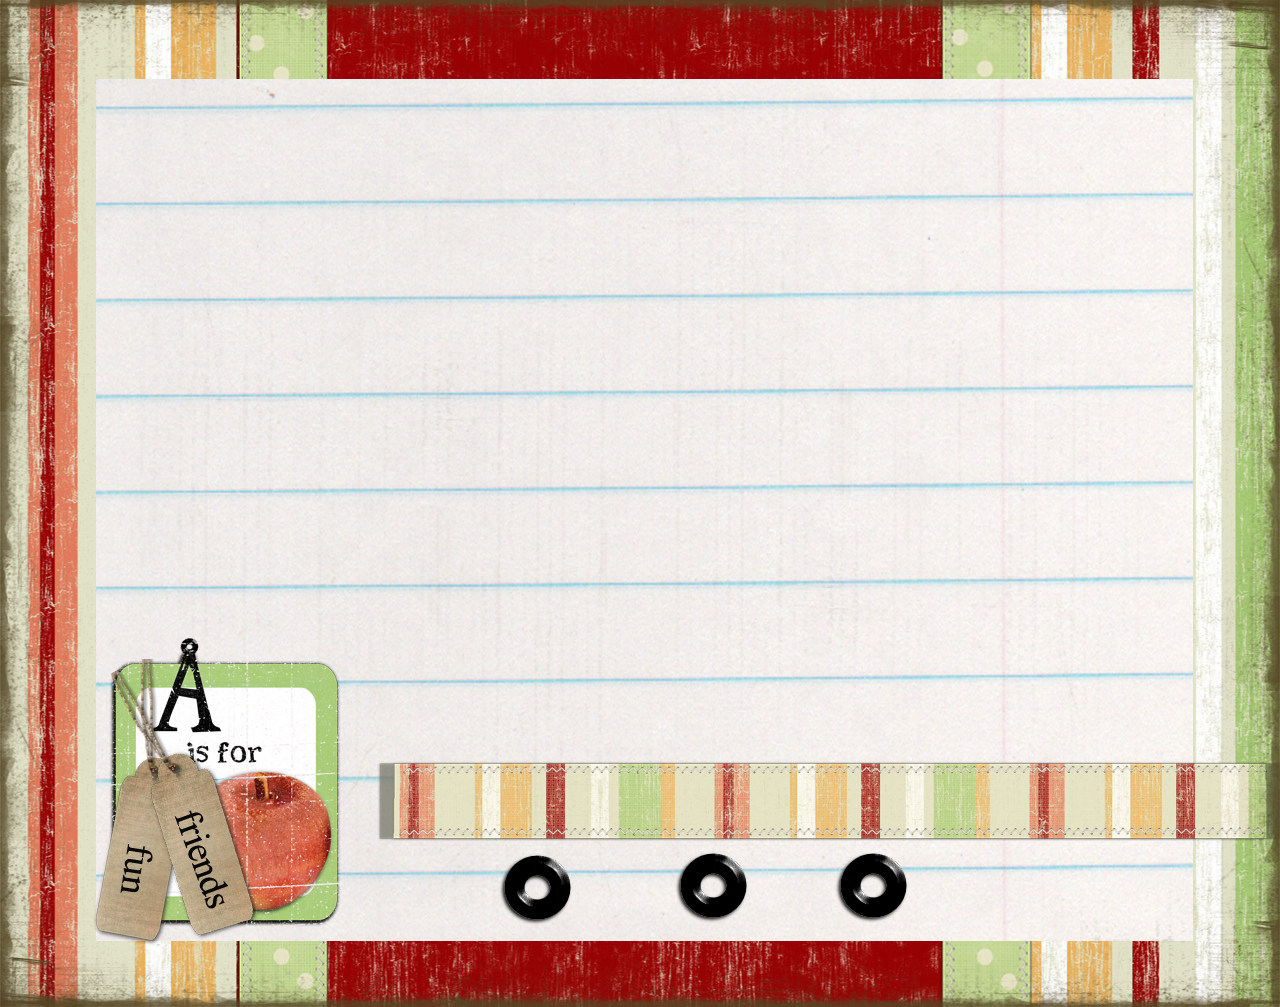 School Bus Transportation Backgrounds For PowerPoint   Education 1280x1007